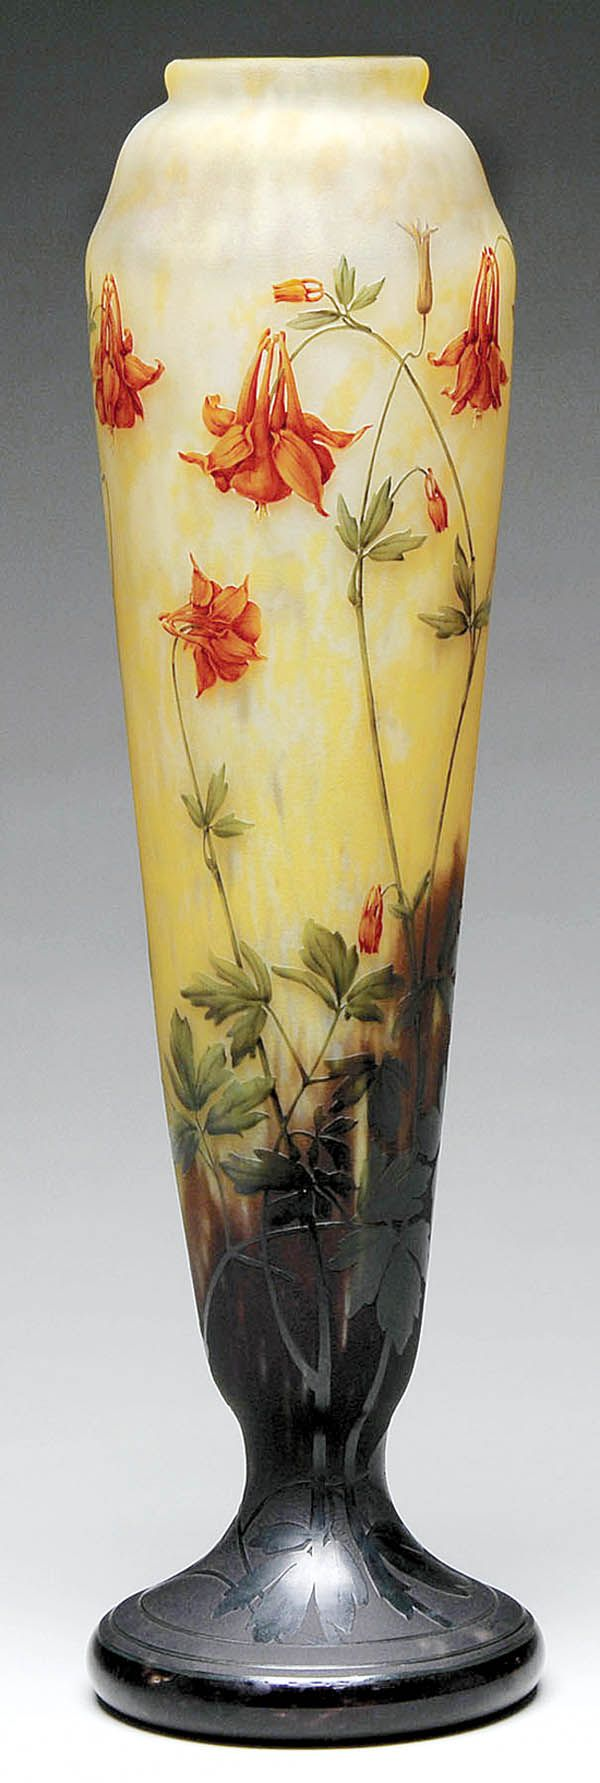 Daum Nancy cameo and enamel vase decorated with rich red columbine flowers.